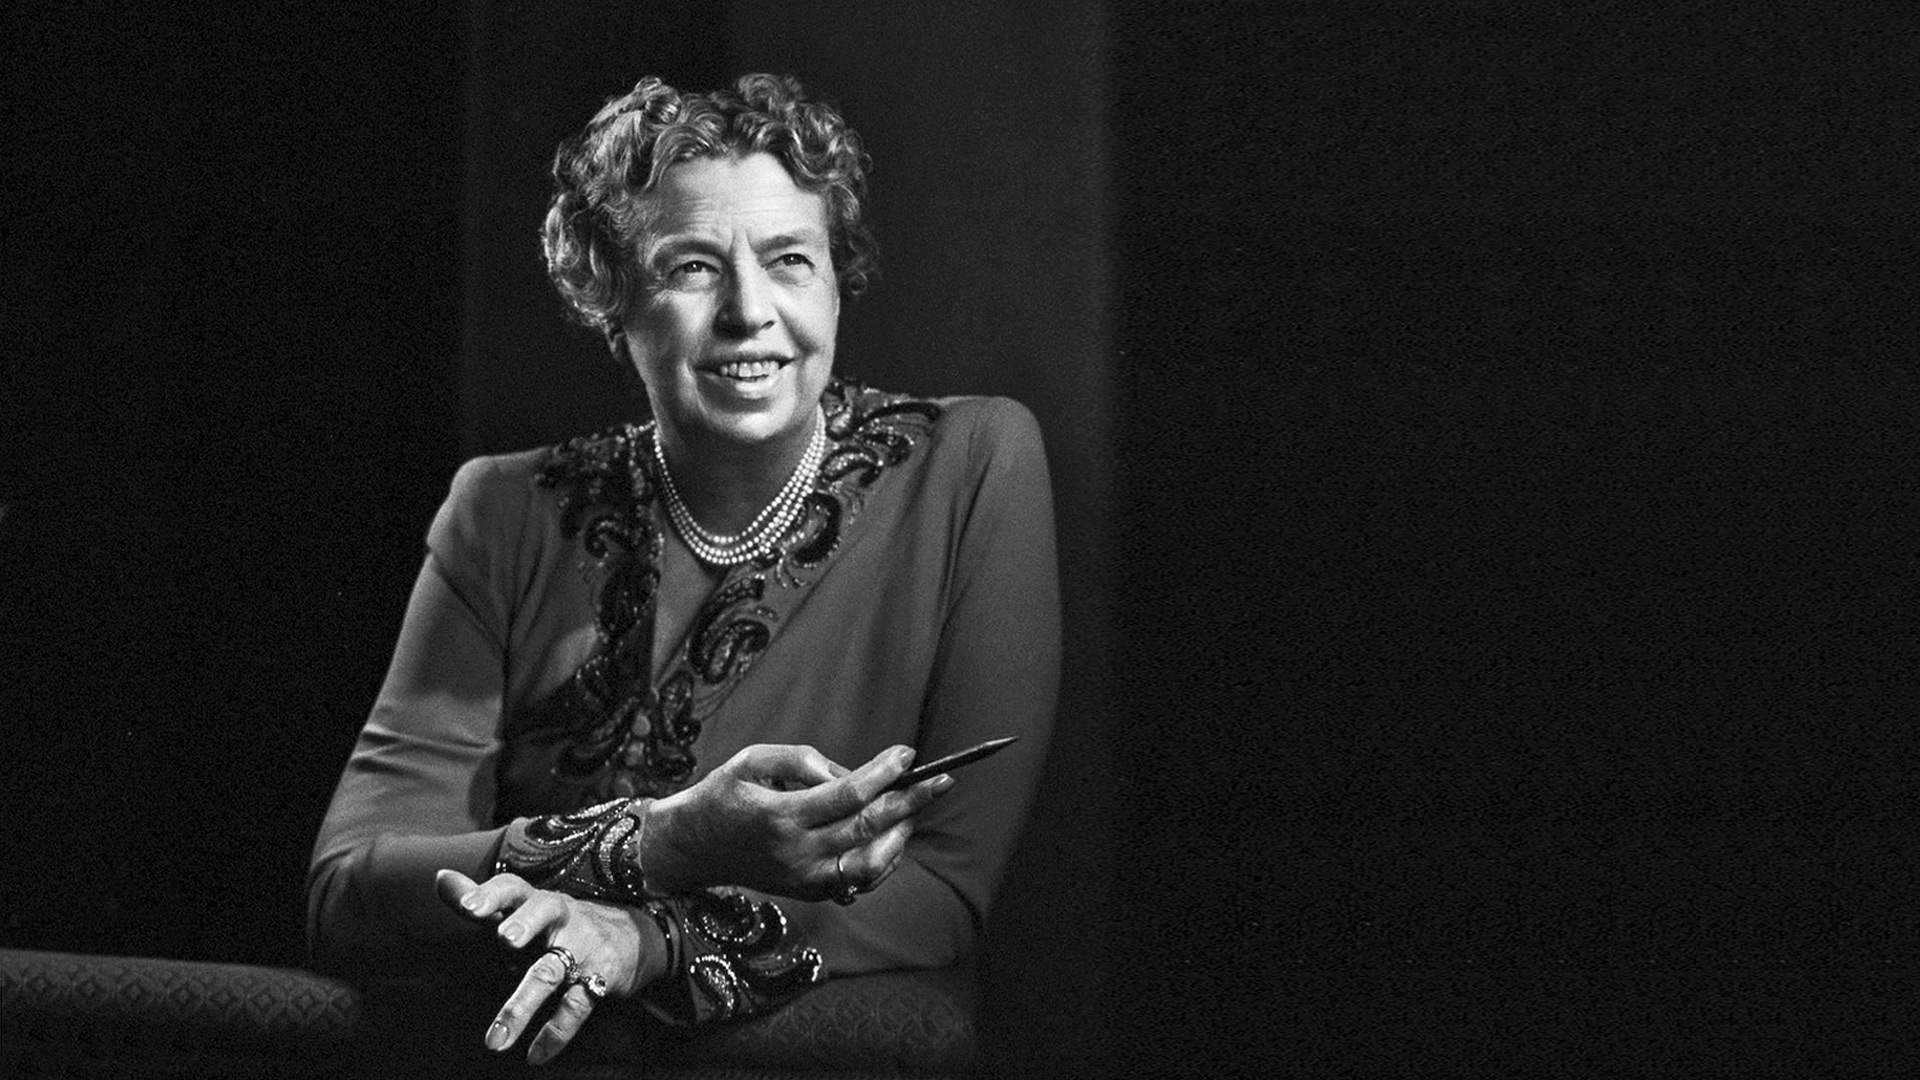 """Anna Eleanor Roosevelt (October 11, 1884 – November 7, 1962) was an American politician, diplomat, and activist.She was the longest-serving First Lady of the United States, having held the post from March 1933 to April 1945 during her husband President Franklin D. Roosevelt's four terms in office,and served as United States Delegate to the United Nations General Assembly from 1945 to 1952.President Harry S. Truman later called her the """"First Lady of the World"""" in tribute to her human rights achievements."""